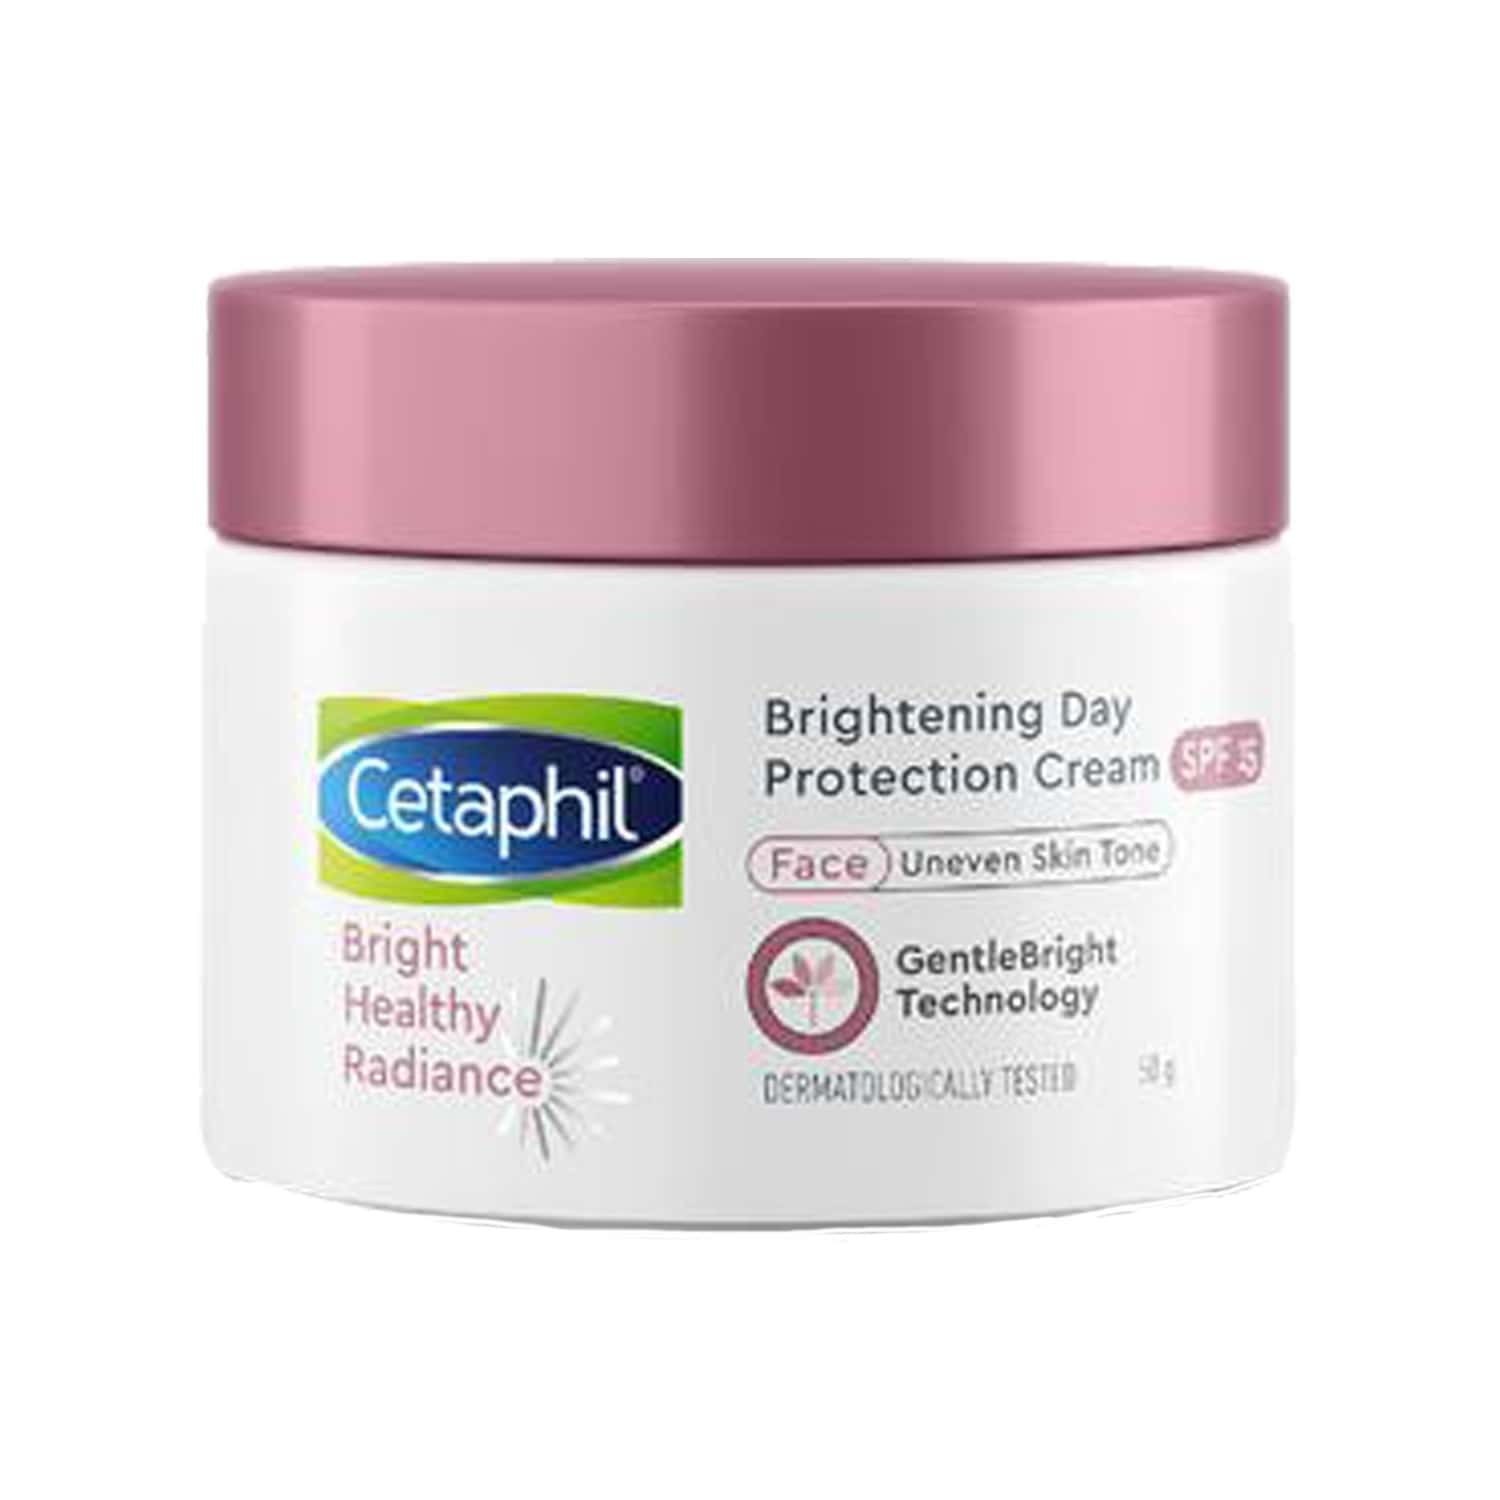 Cetaphil Bhr Day Protection Cream - 50ml